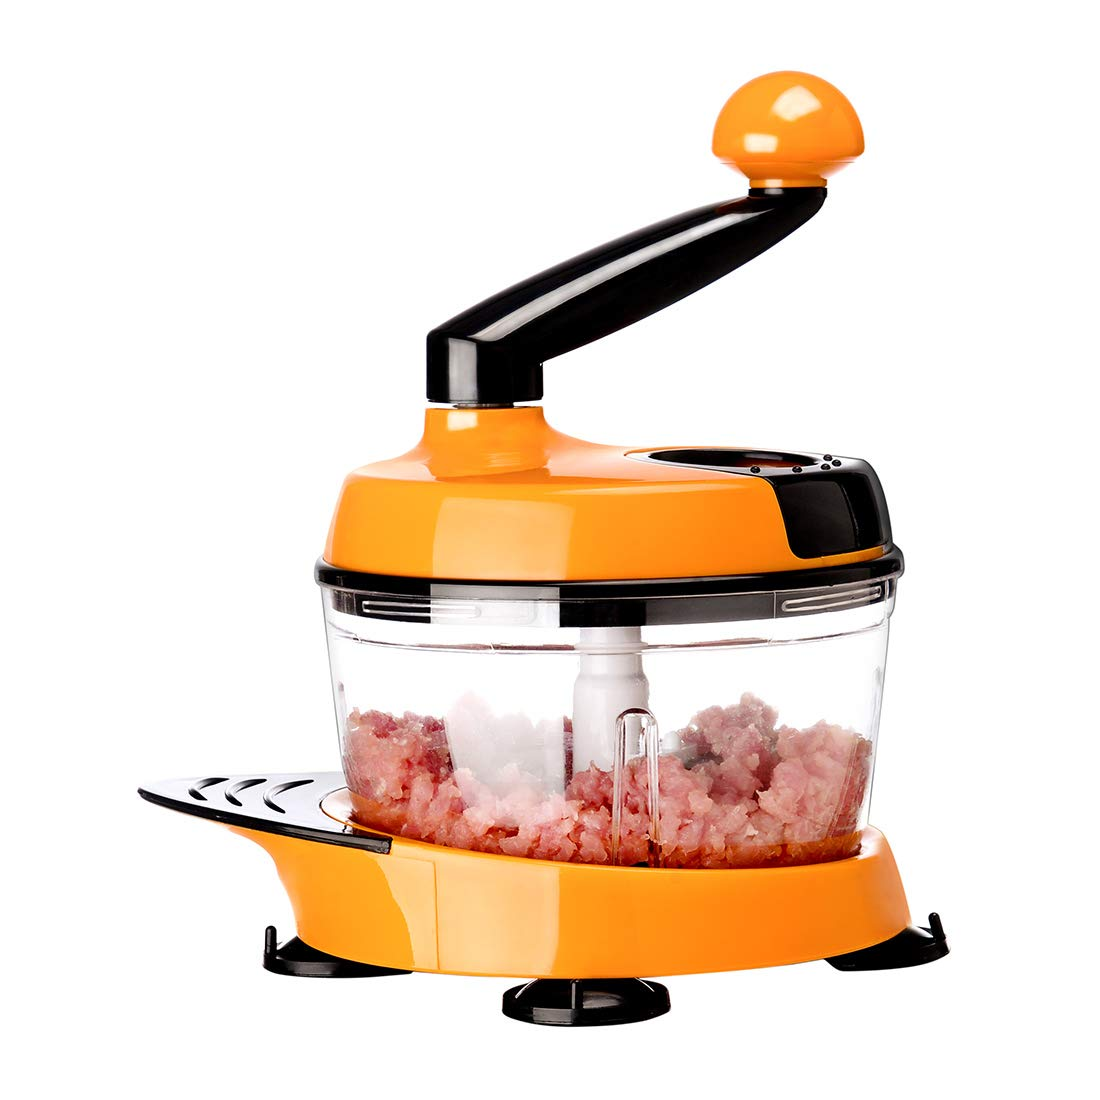 MIGECON Kitchen Manual Food Processor Meat Mincer Vegetable Chopper with Hand Crank and 3 Blades Orange Color